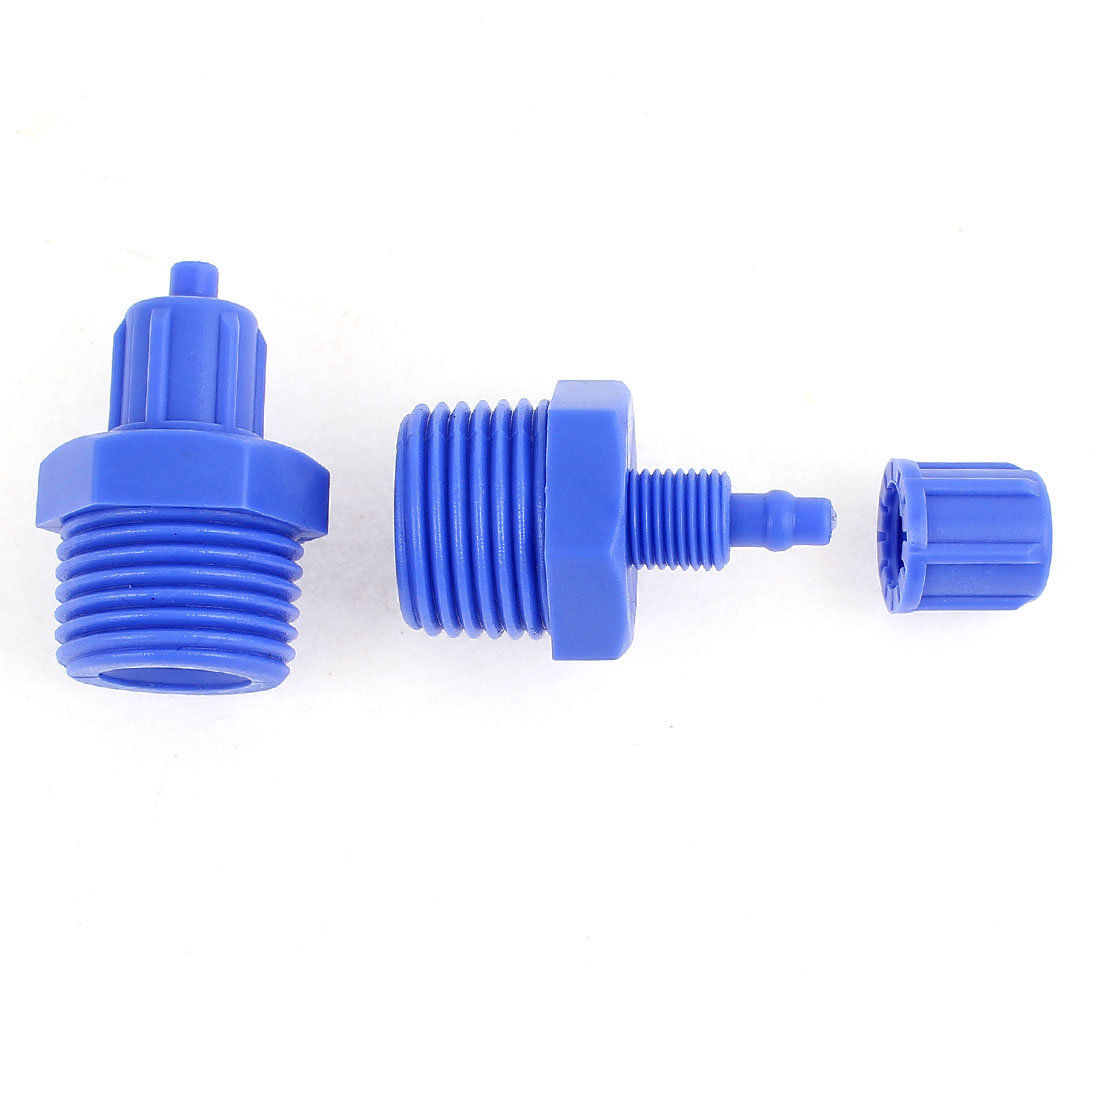 2Pcs 1/2BSP Thread Pneumatic Quick Fitting Tube Hose Straight Connector 6mm OD